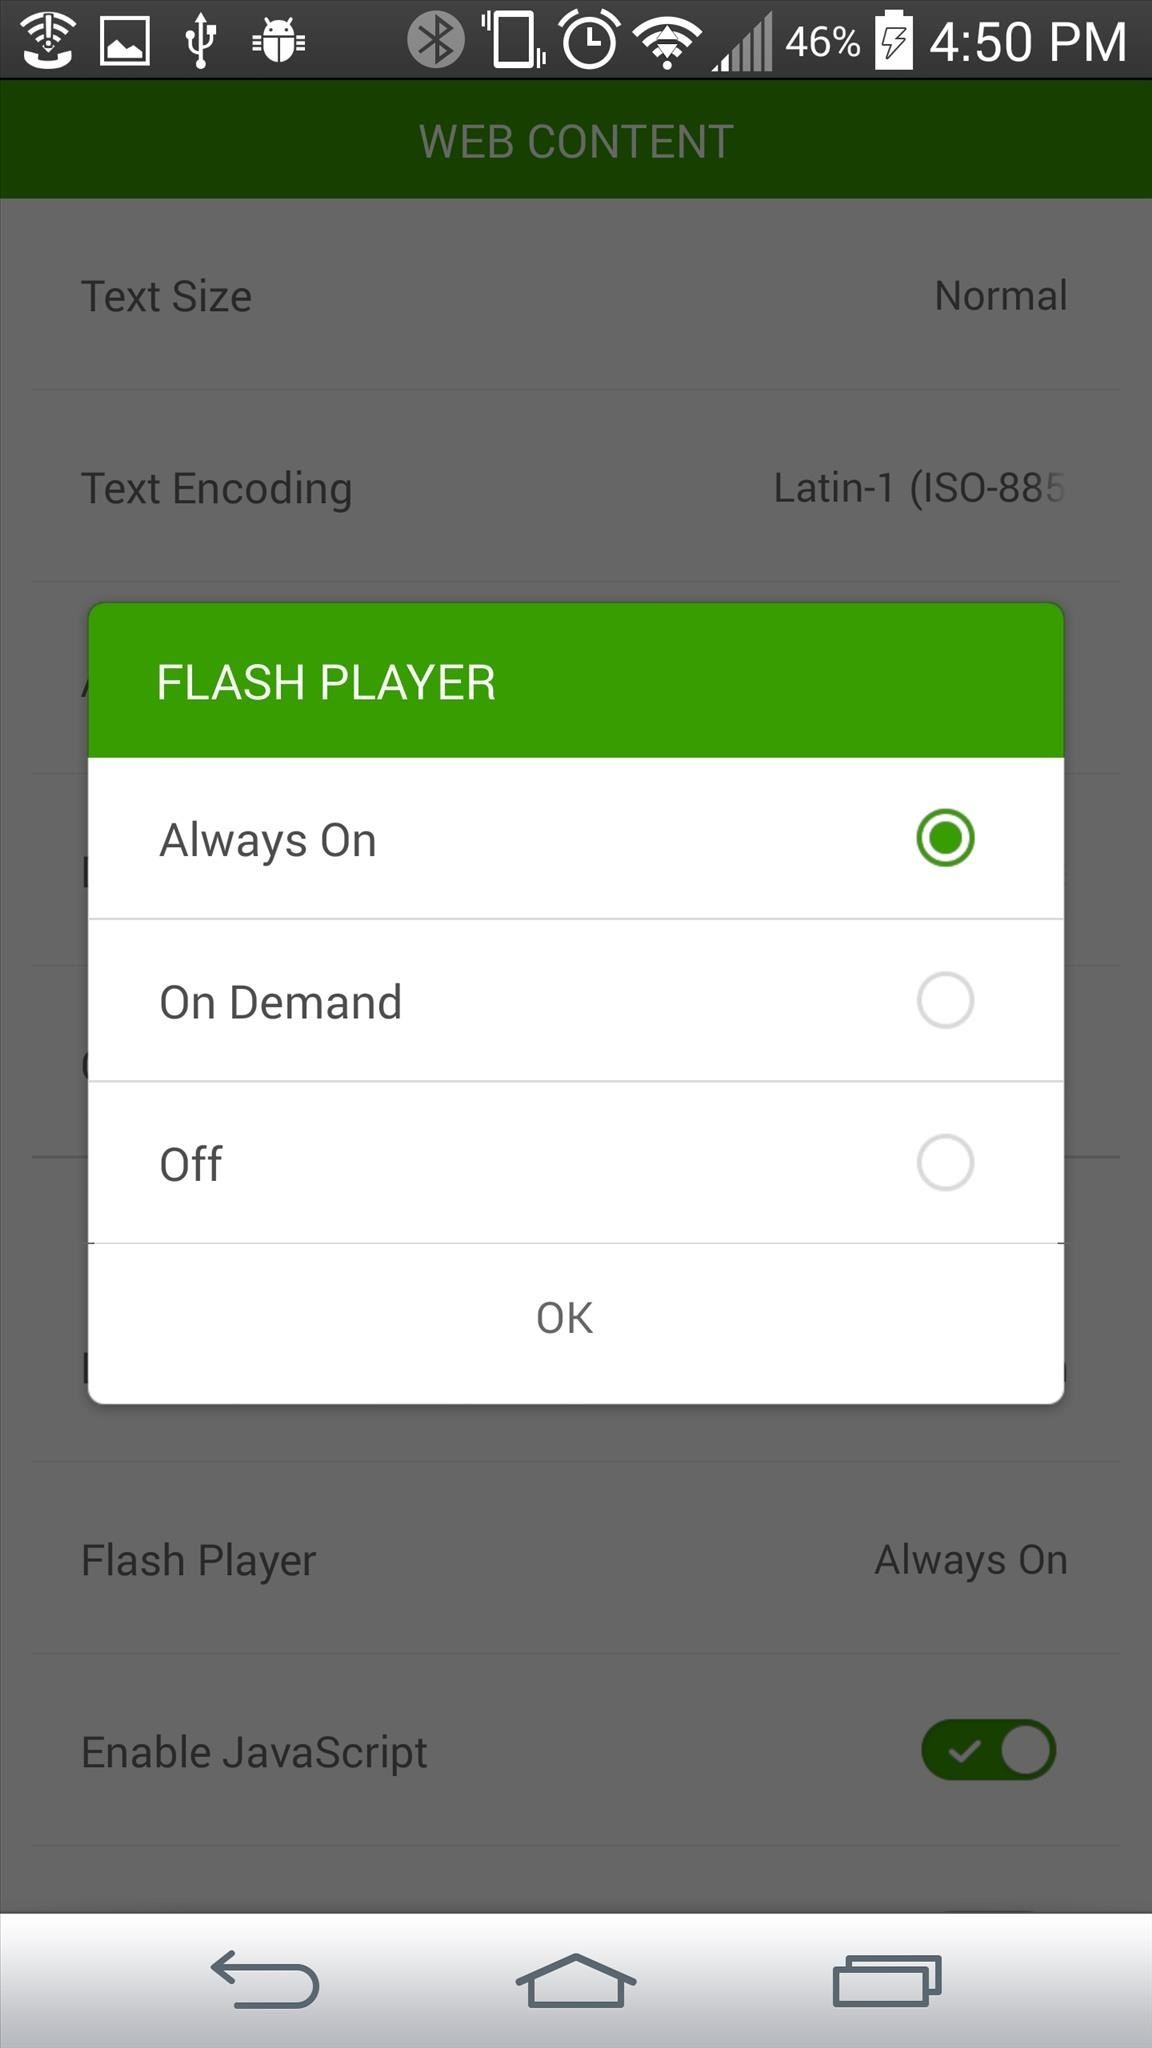 How to Install Adobe Flash Player on Your LG G3 to Play Web